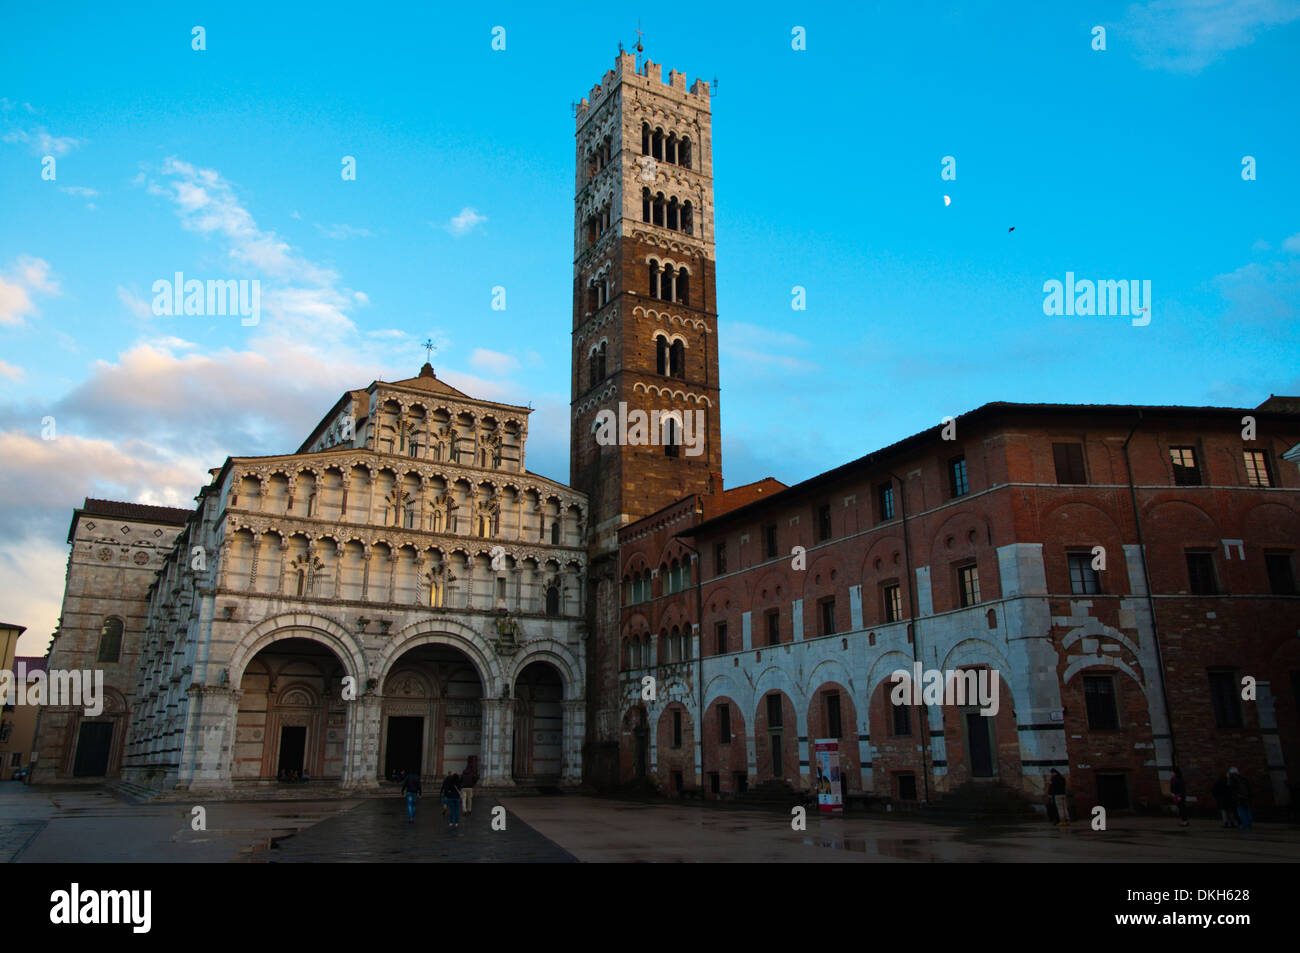 Duomo the cathedral cattedrale di San Martino church old town Lucca city Tuscany region Italy Europe - Stock Image